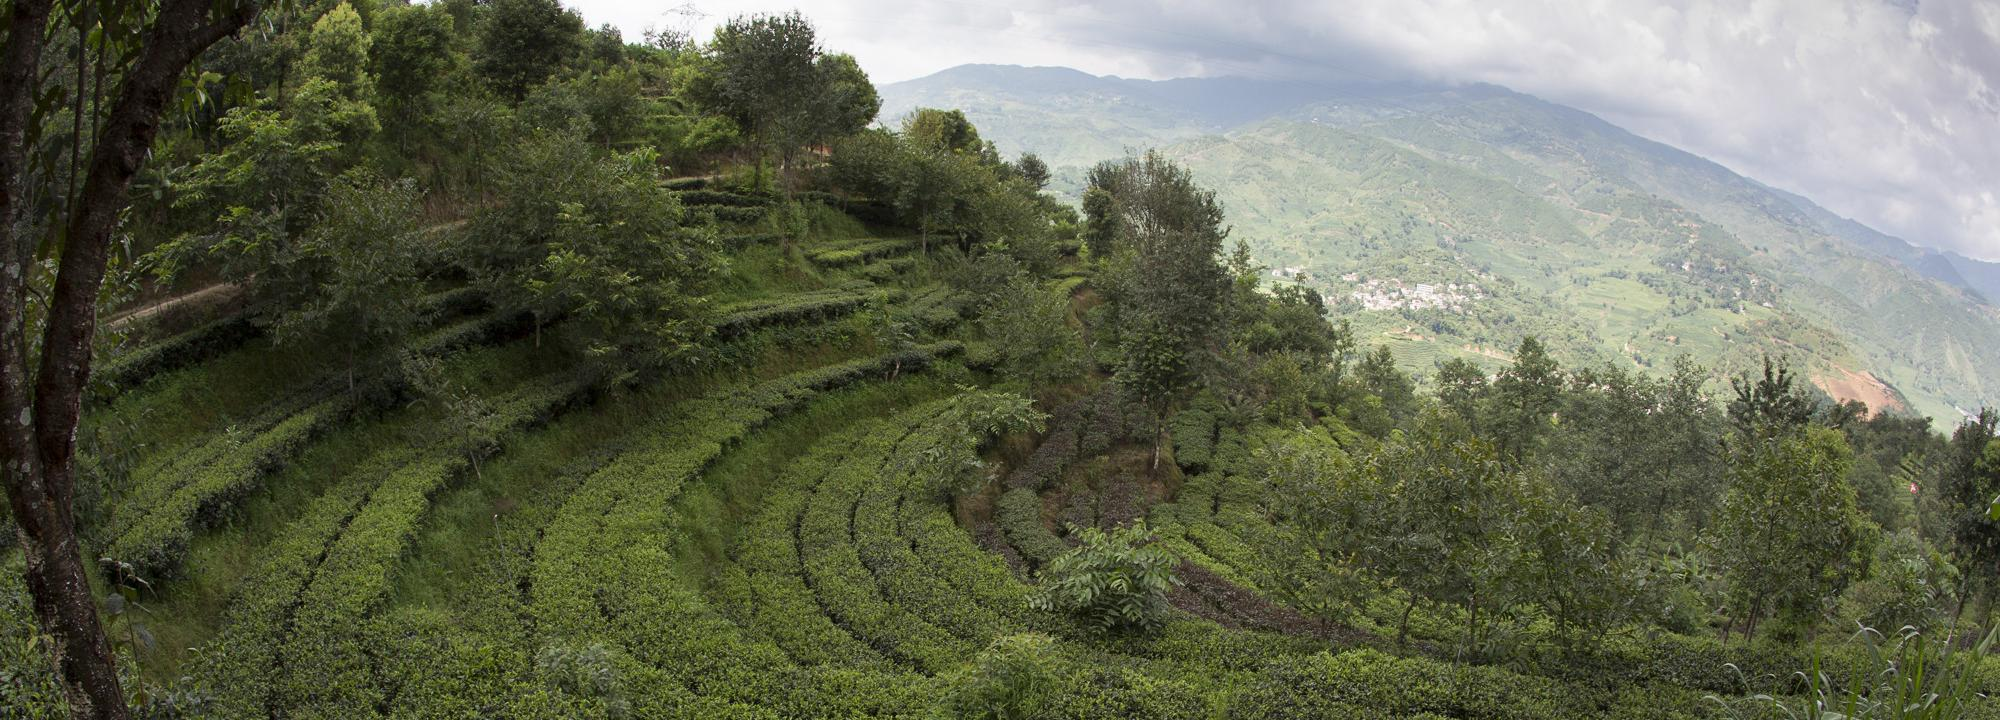 Tea Terraces in China, courtesy Rainforest Alliance